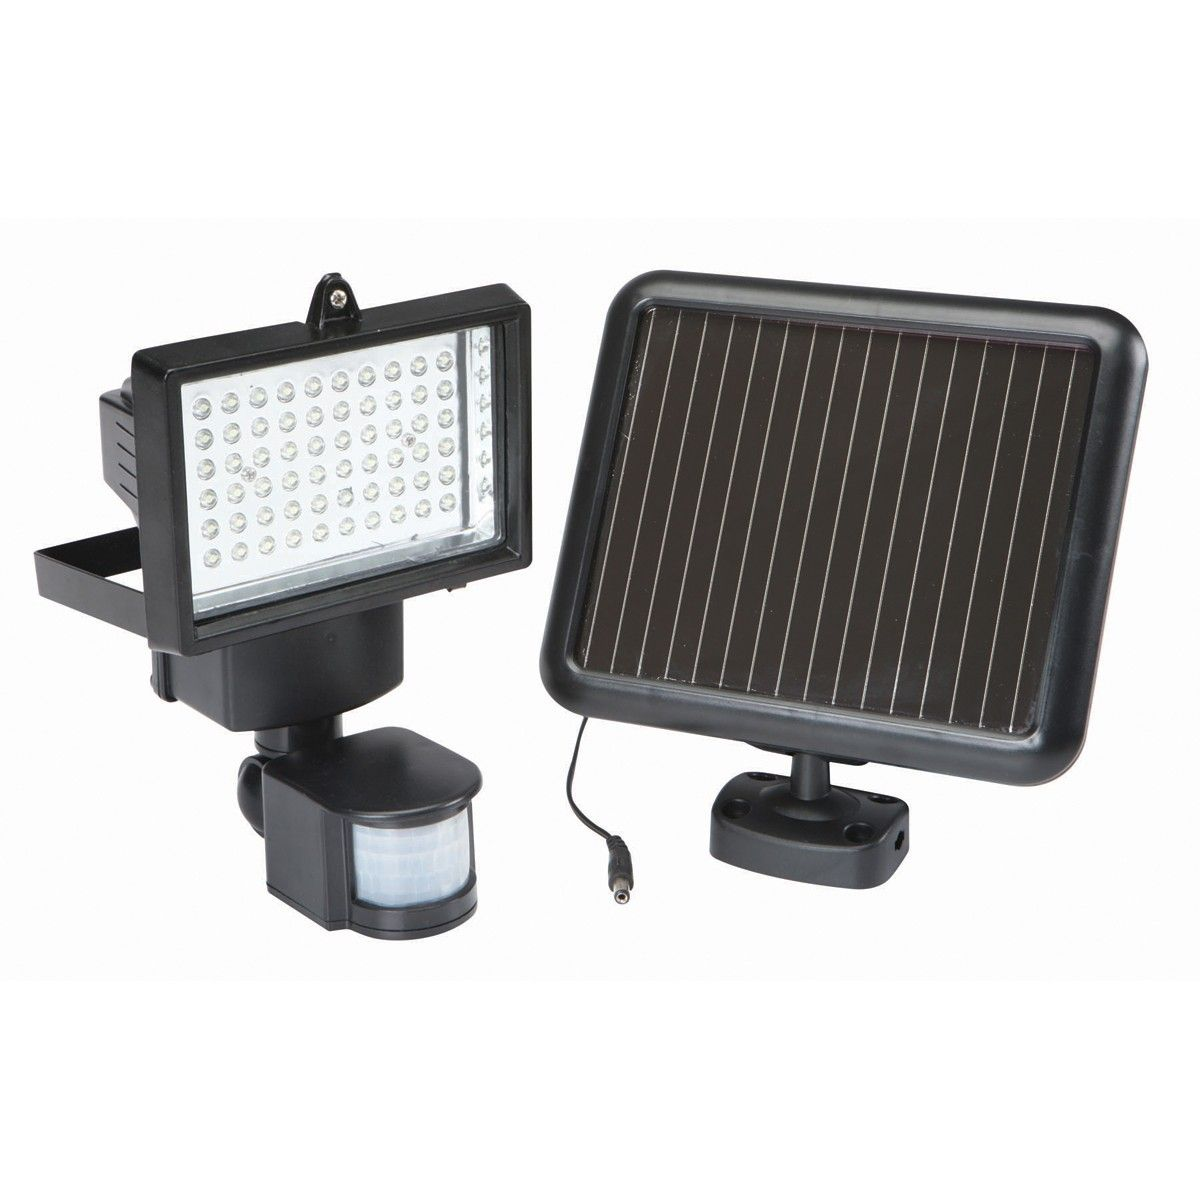 Flood Light Security Camera Alluring 60 Led Solar Security Light  Solar Security Light Solar And Lights 2018